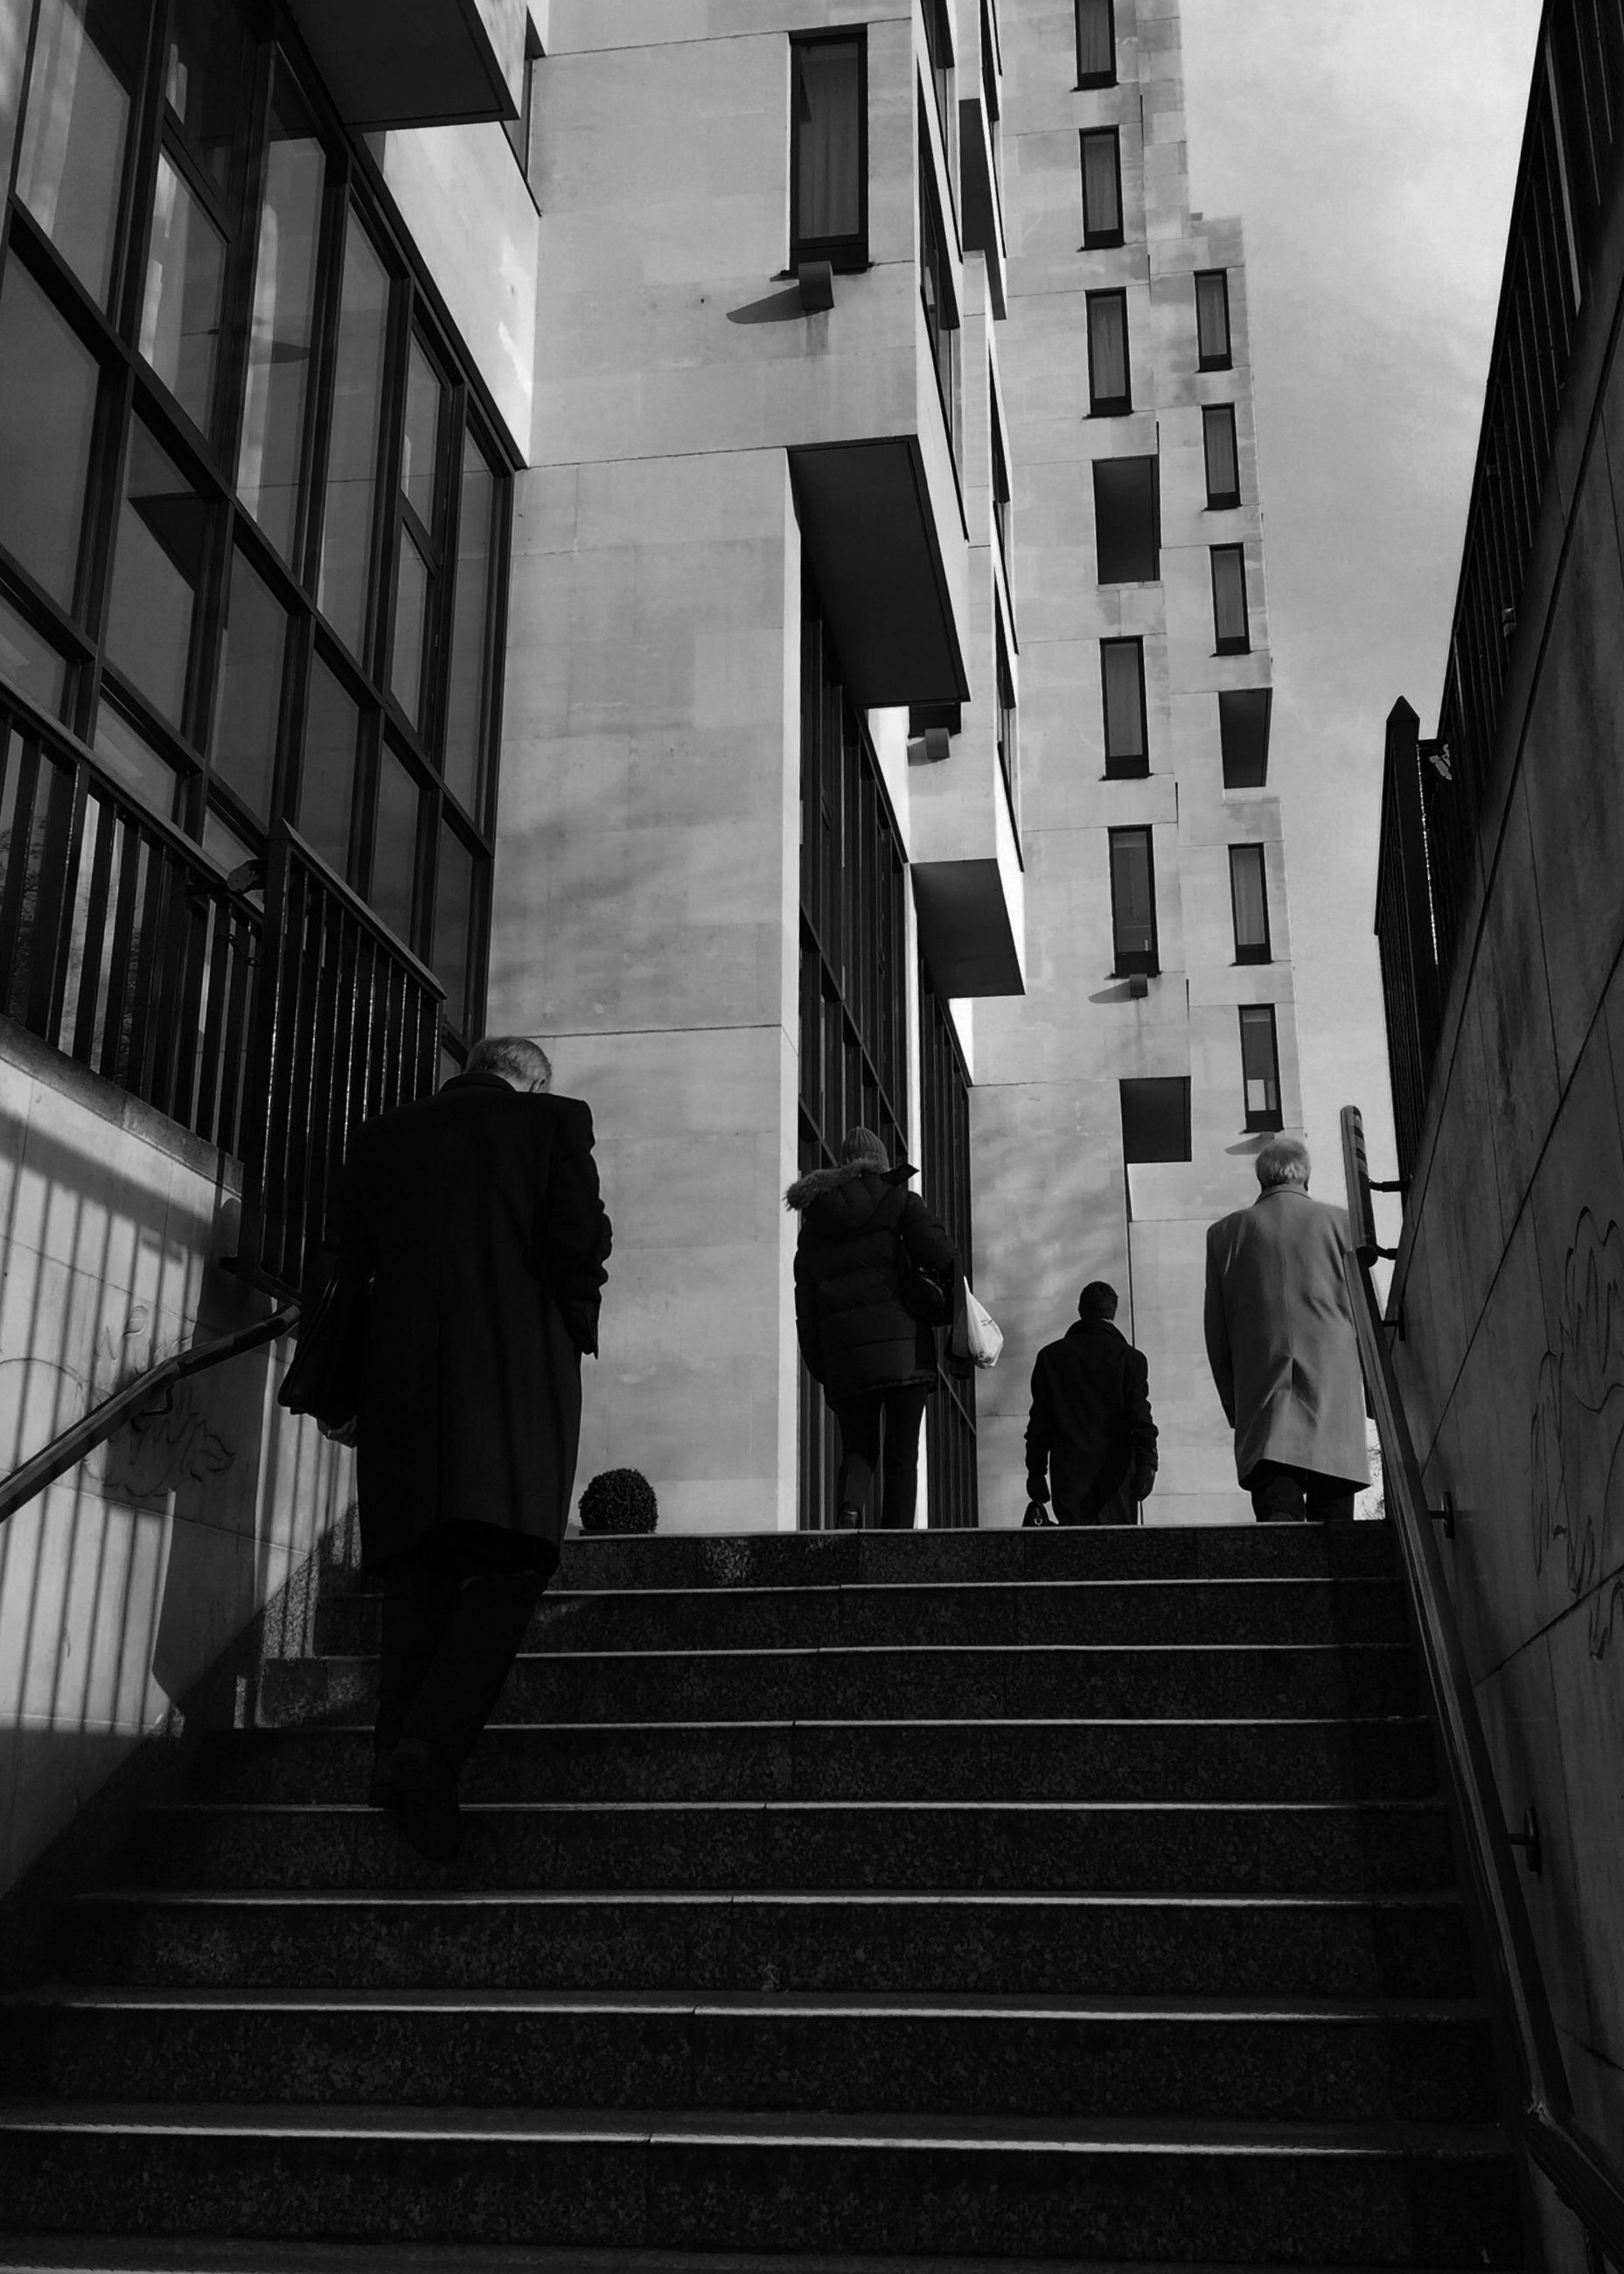 architecture, built structure, building exterior, steps, steps and staircases, staircase, railing, low angle view, men, walking, sky, building, stairs, lifestyles, silhouette, city, person, full length